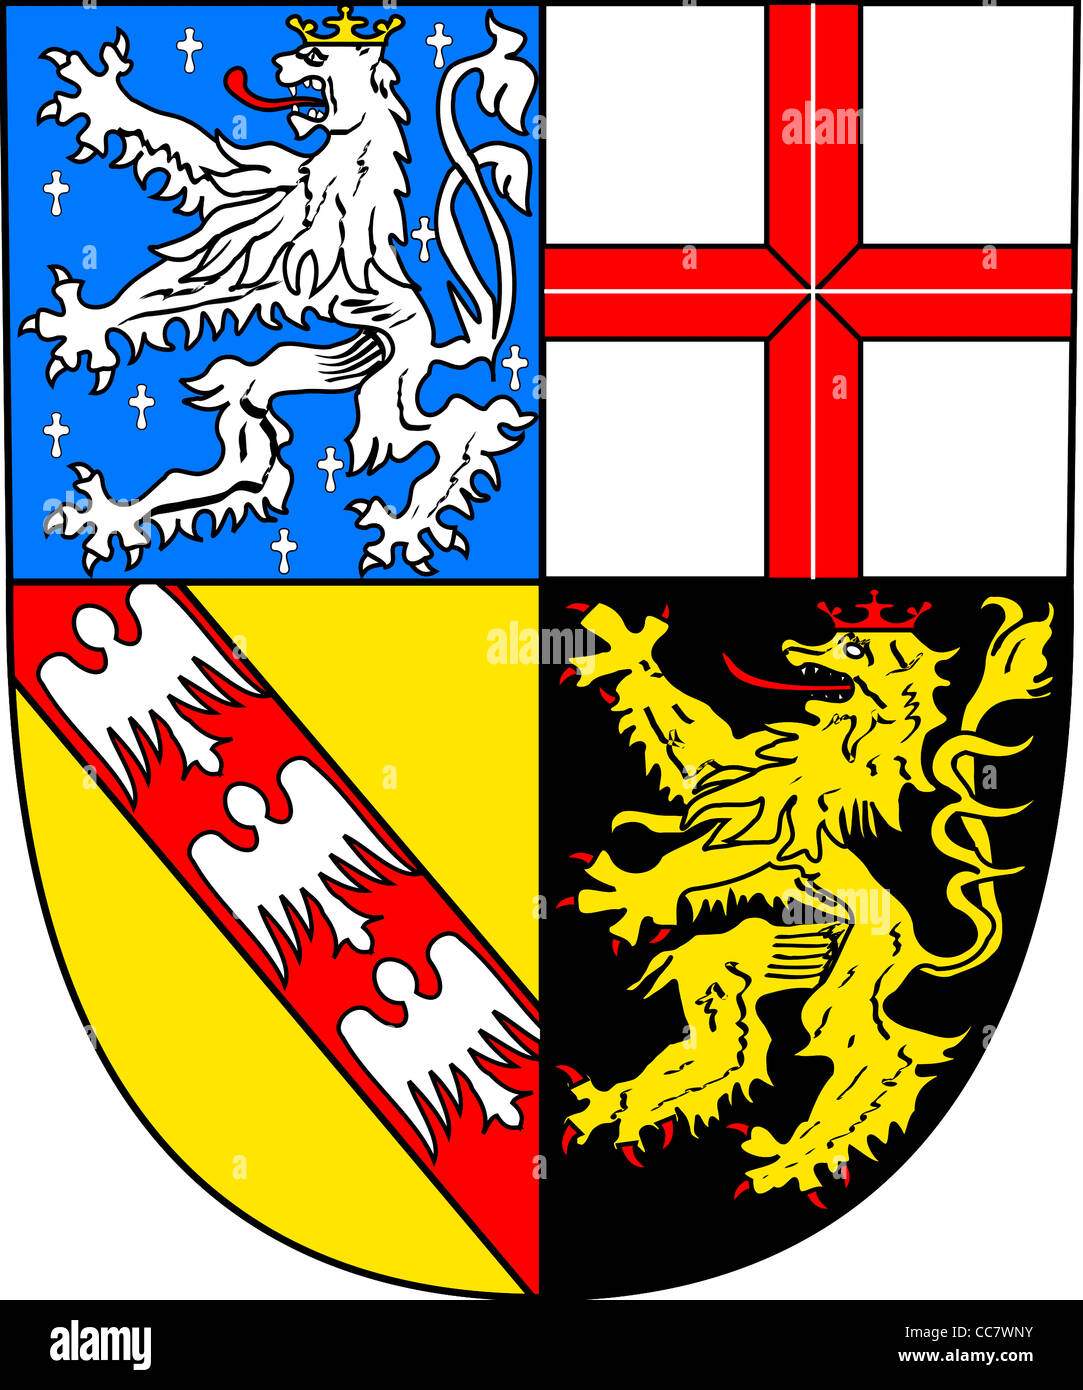 Coat of arms of the Saarland. - Stock Image